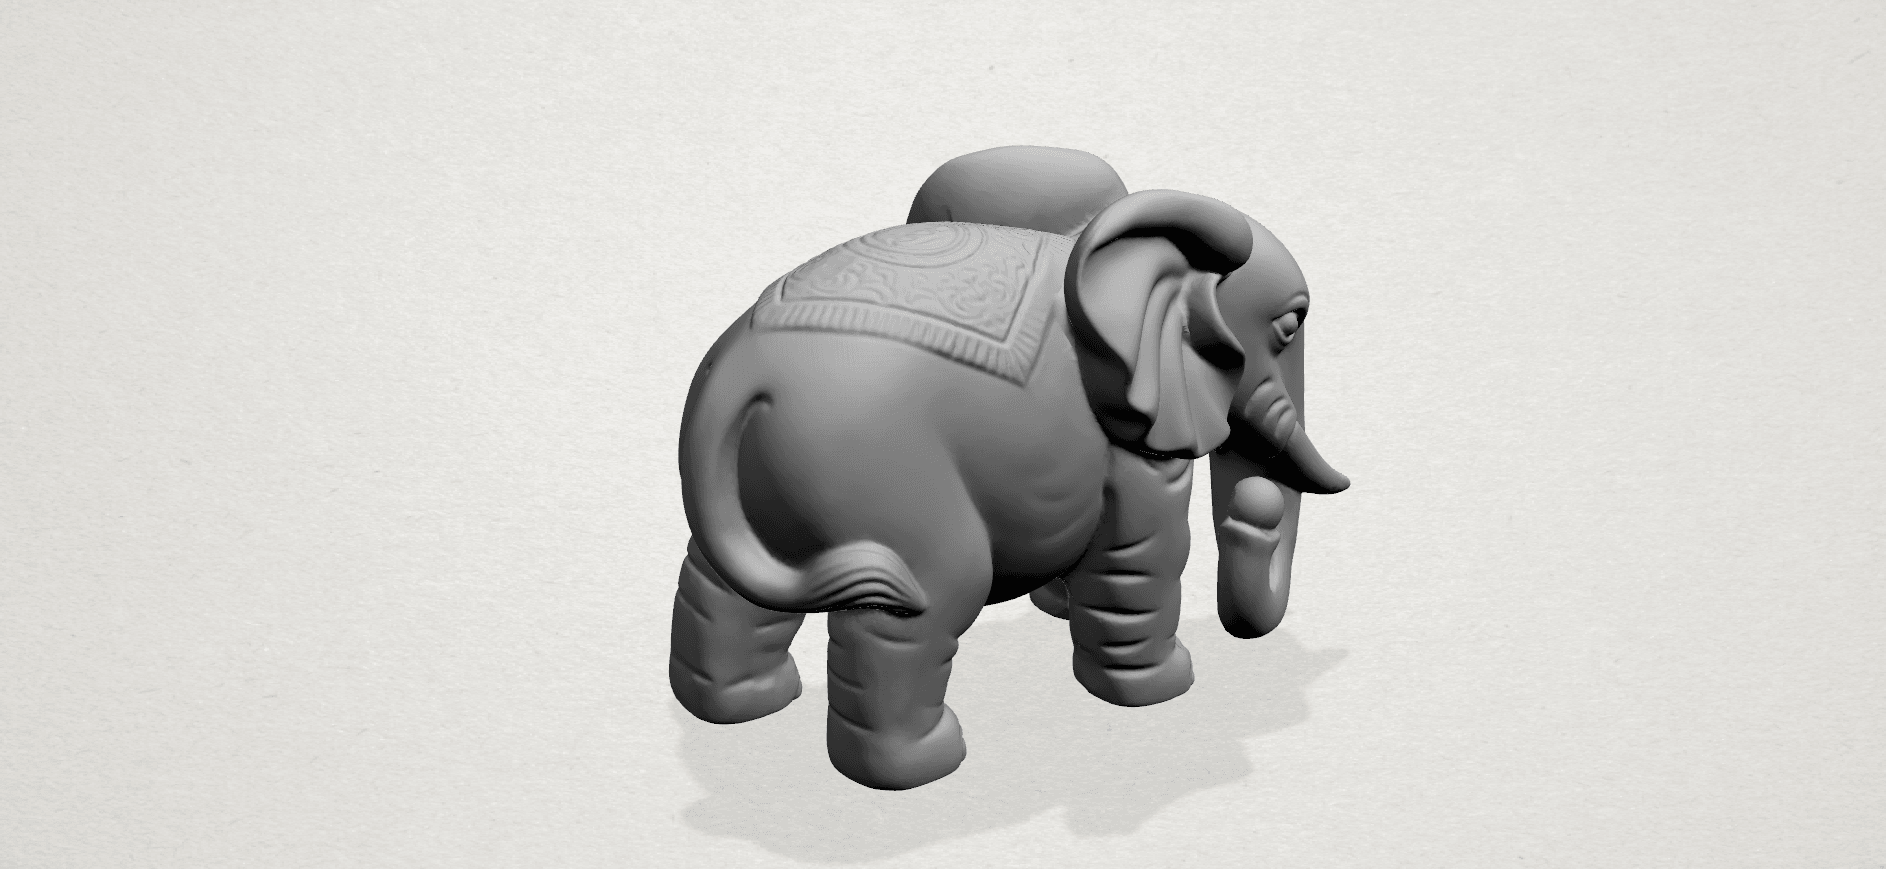 Elephant 03-A04.png Download free STL file Elephant 03 • 3D printable design, GeorgesNikkei